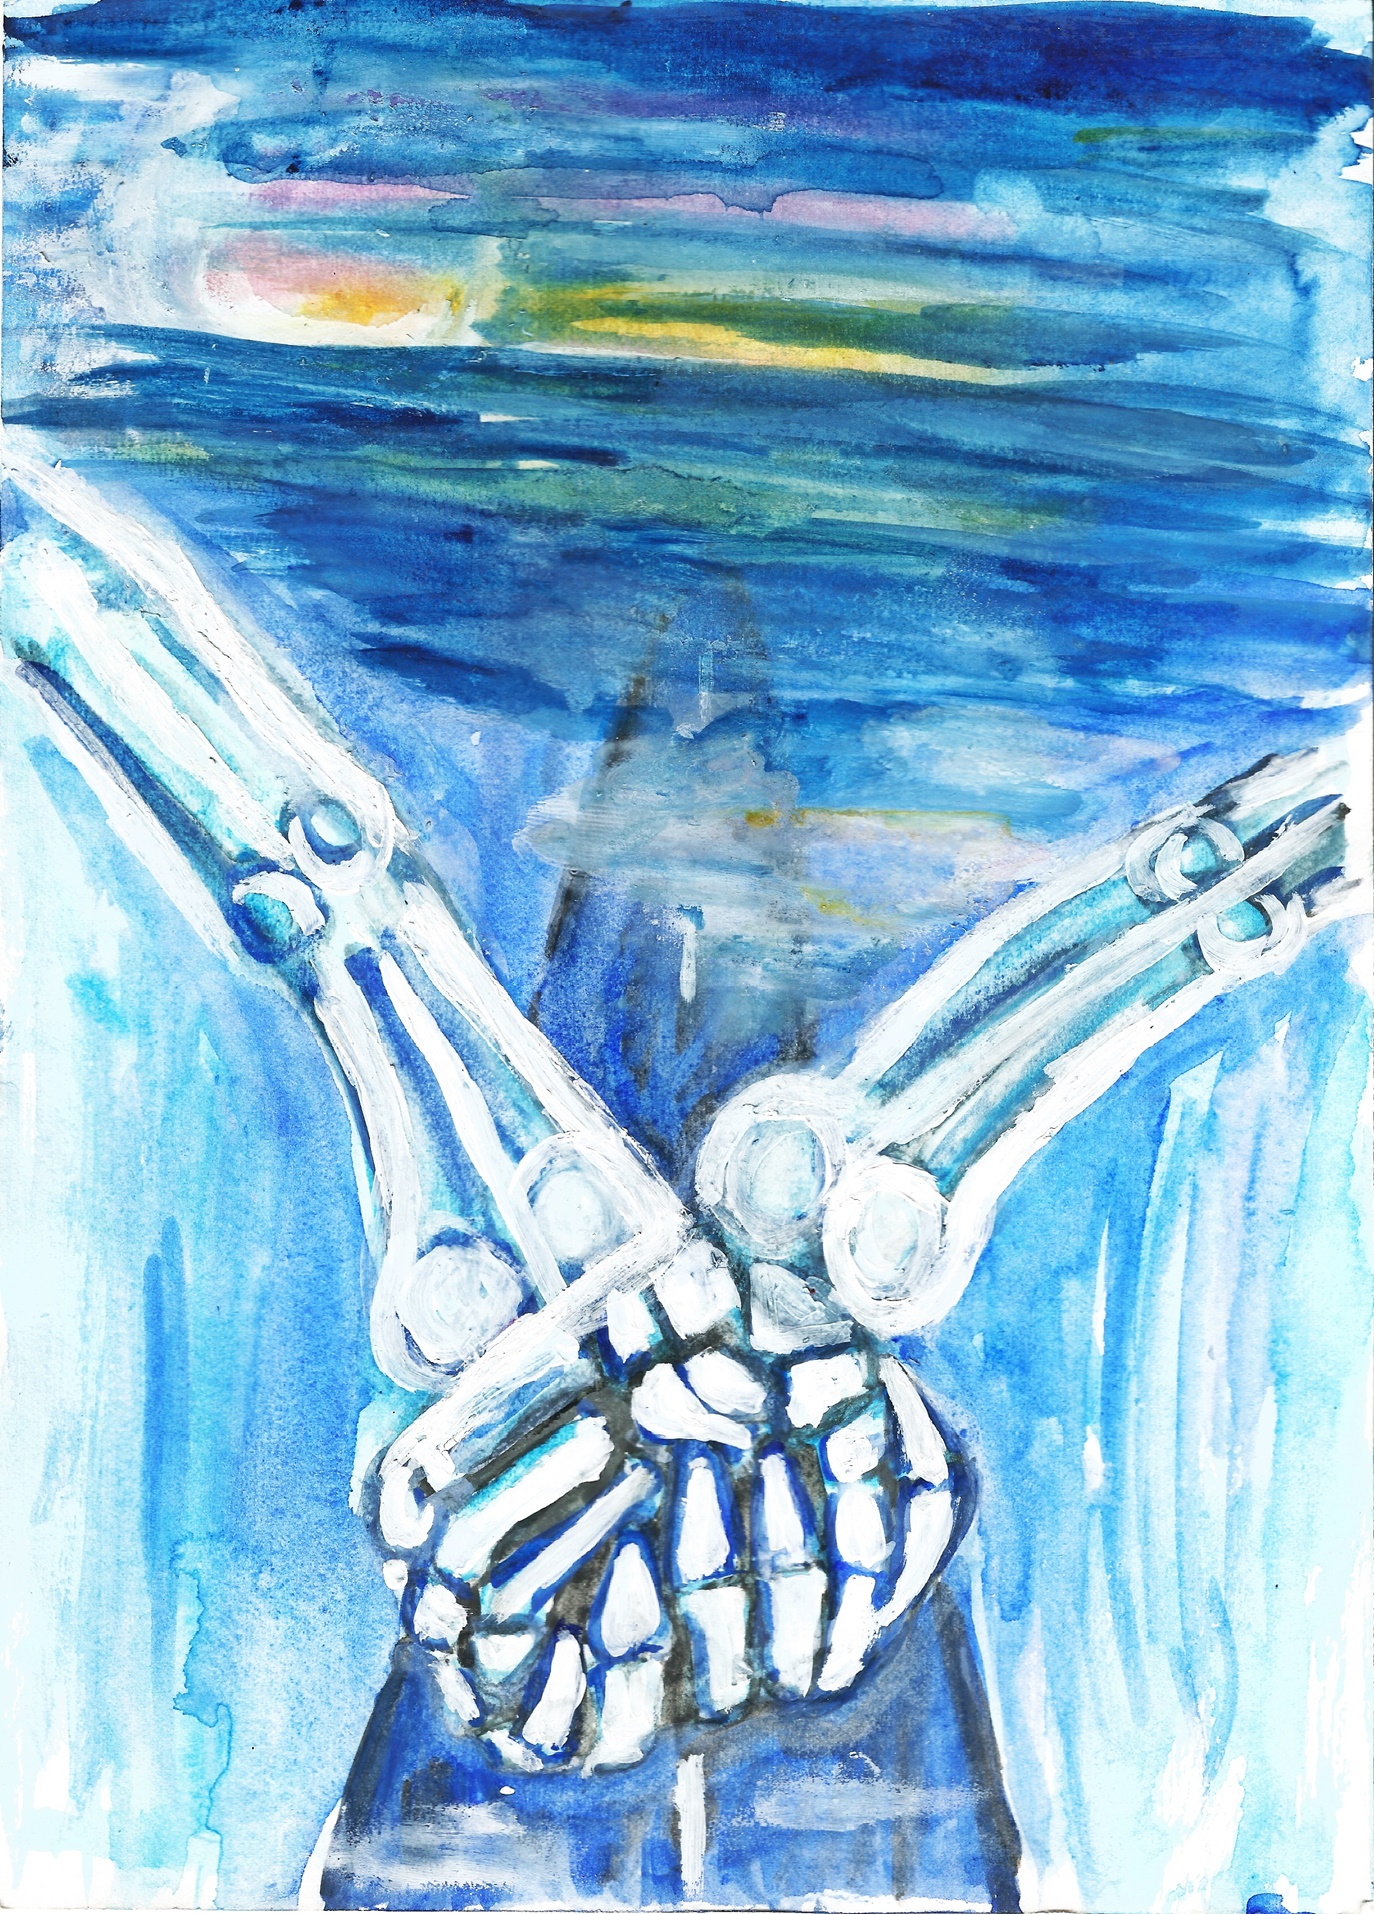 Skelly love, Holding Hands original watercolour painting